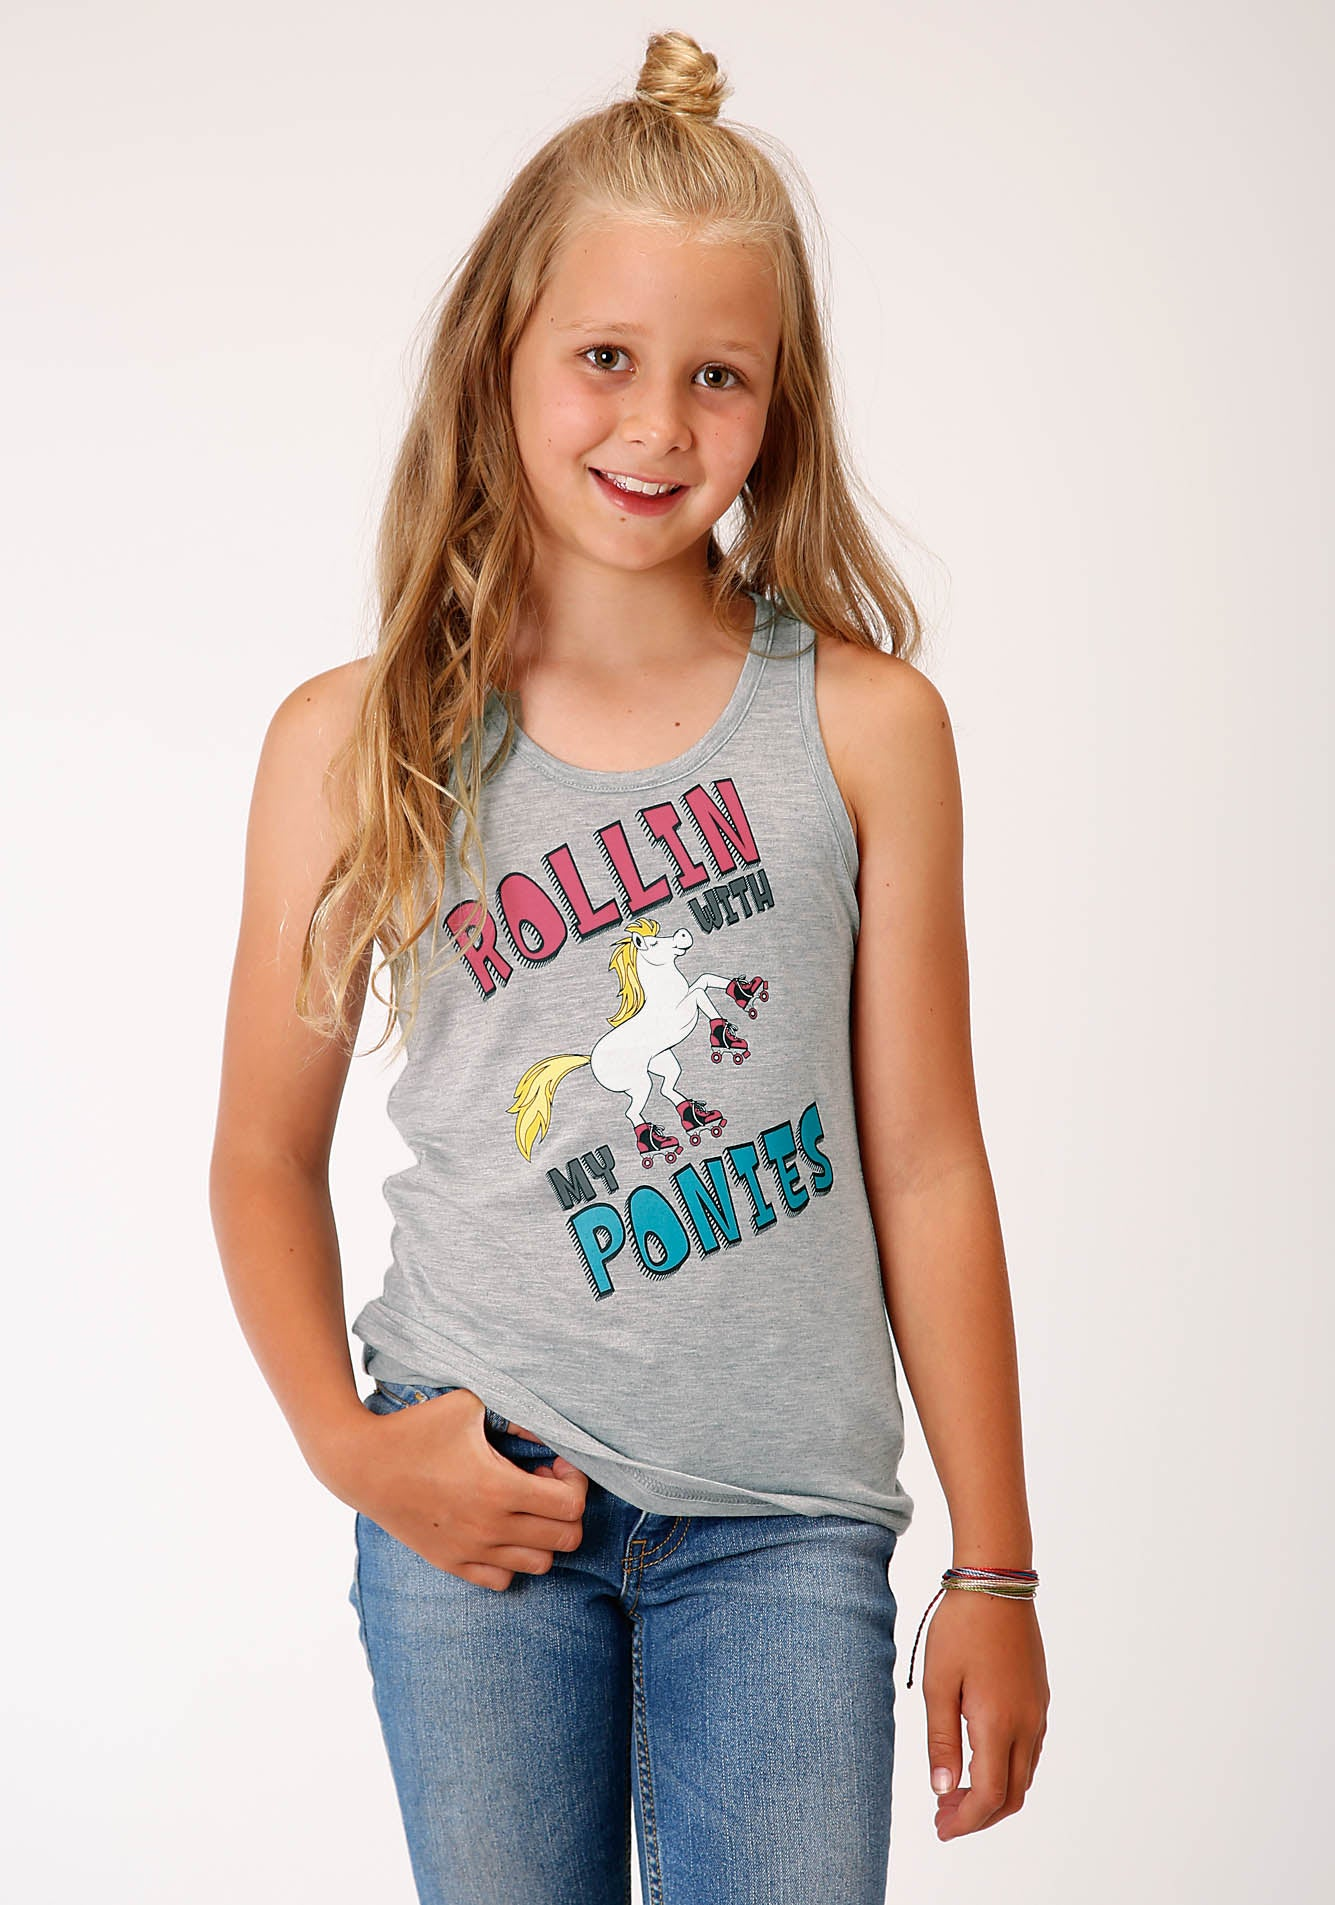 ROPER GIRLS GREY 00244 POLY RAYON RACERBACK TANK FIVE STAR GIRL'S SLEEVELESS